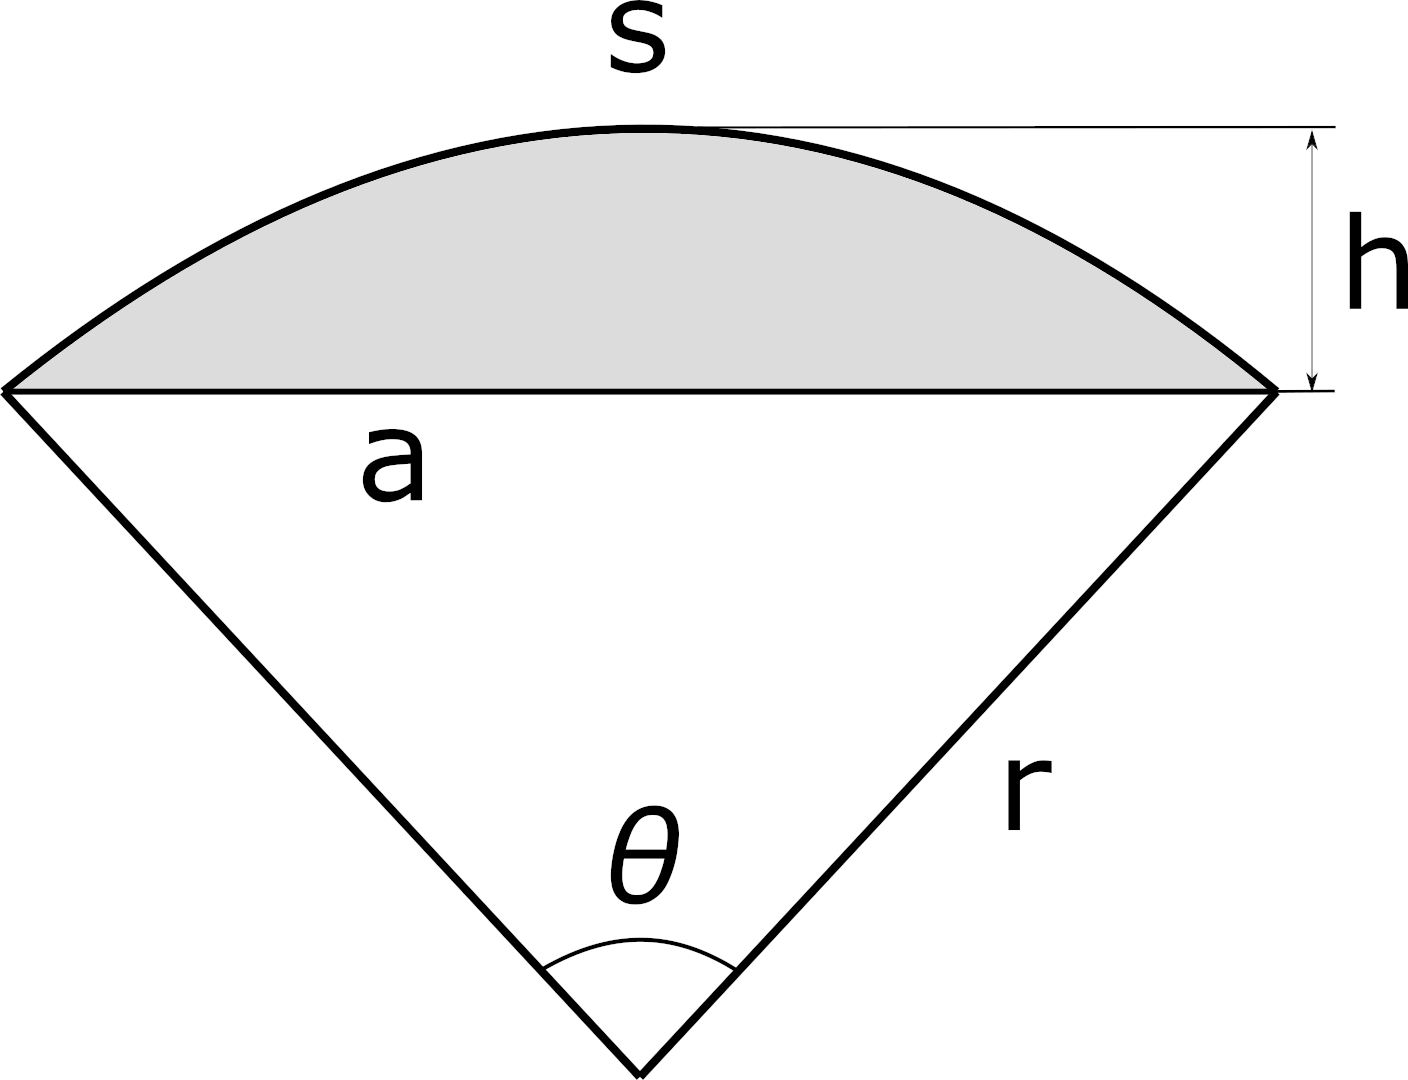 diagram of a circular segment showing the radius, central angle, chord length, height, and arc length